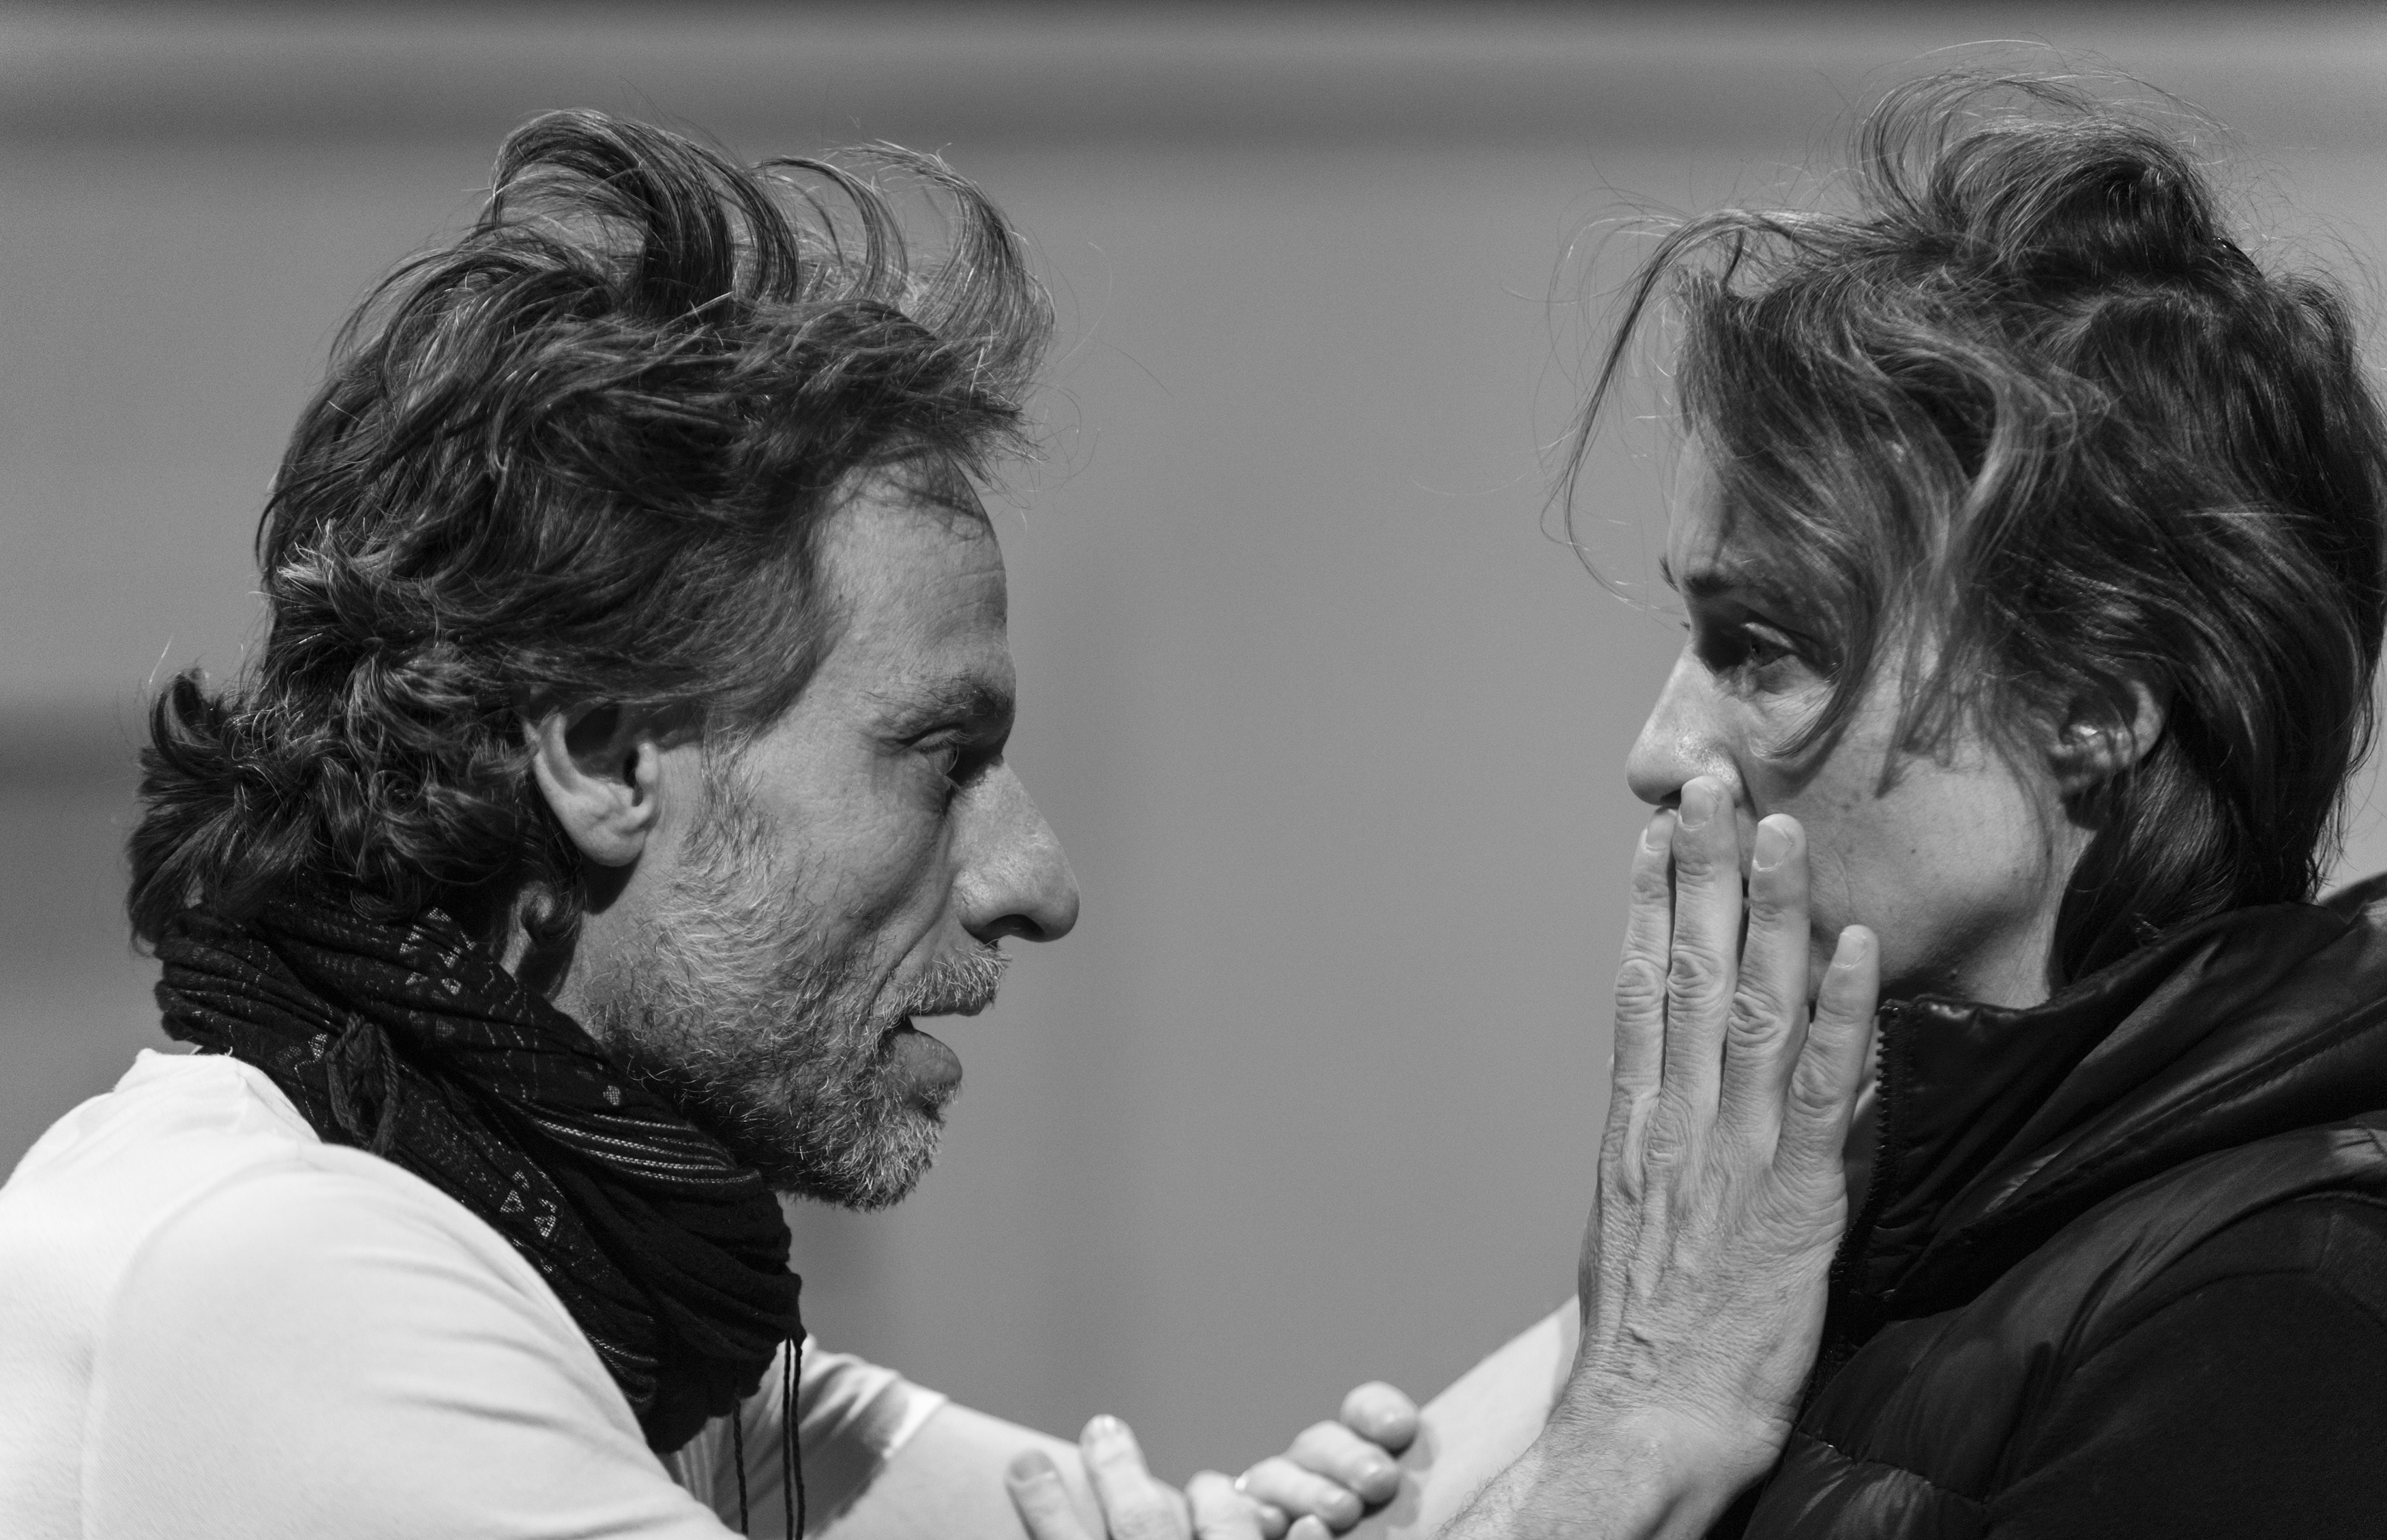 Christophe Grégoire and Camille Cayol